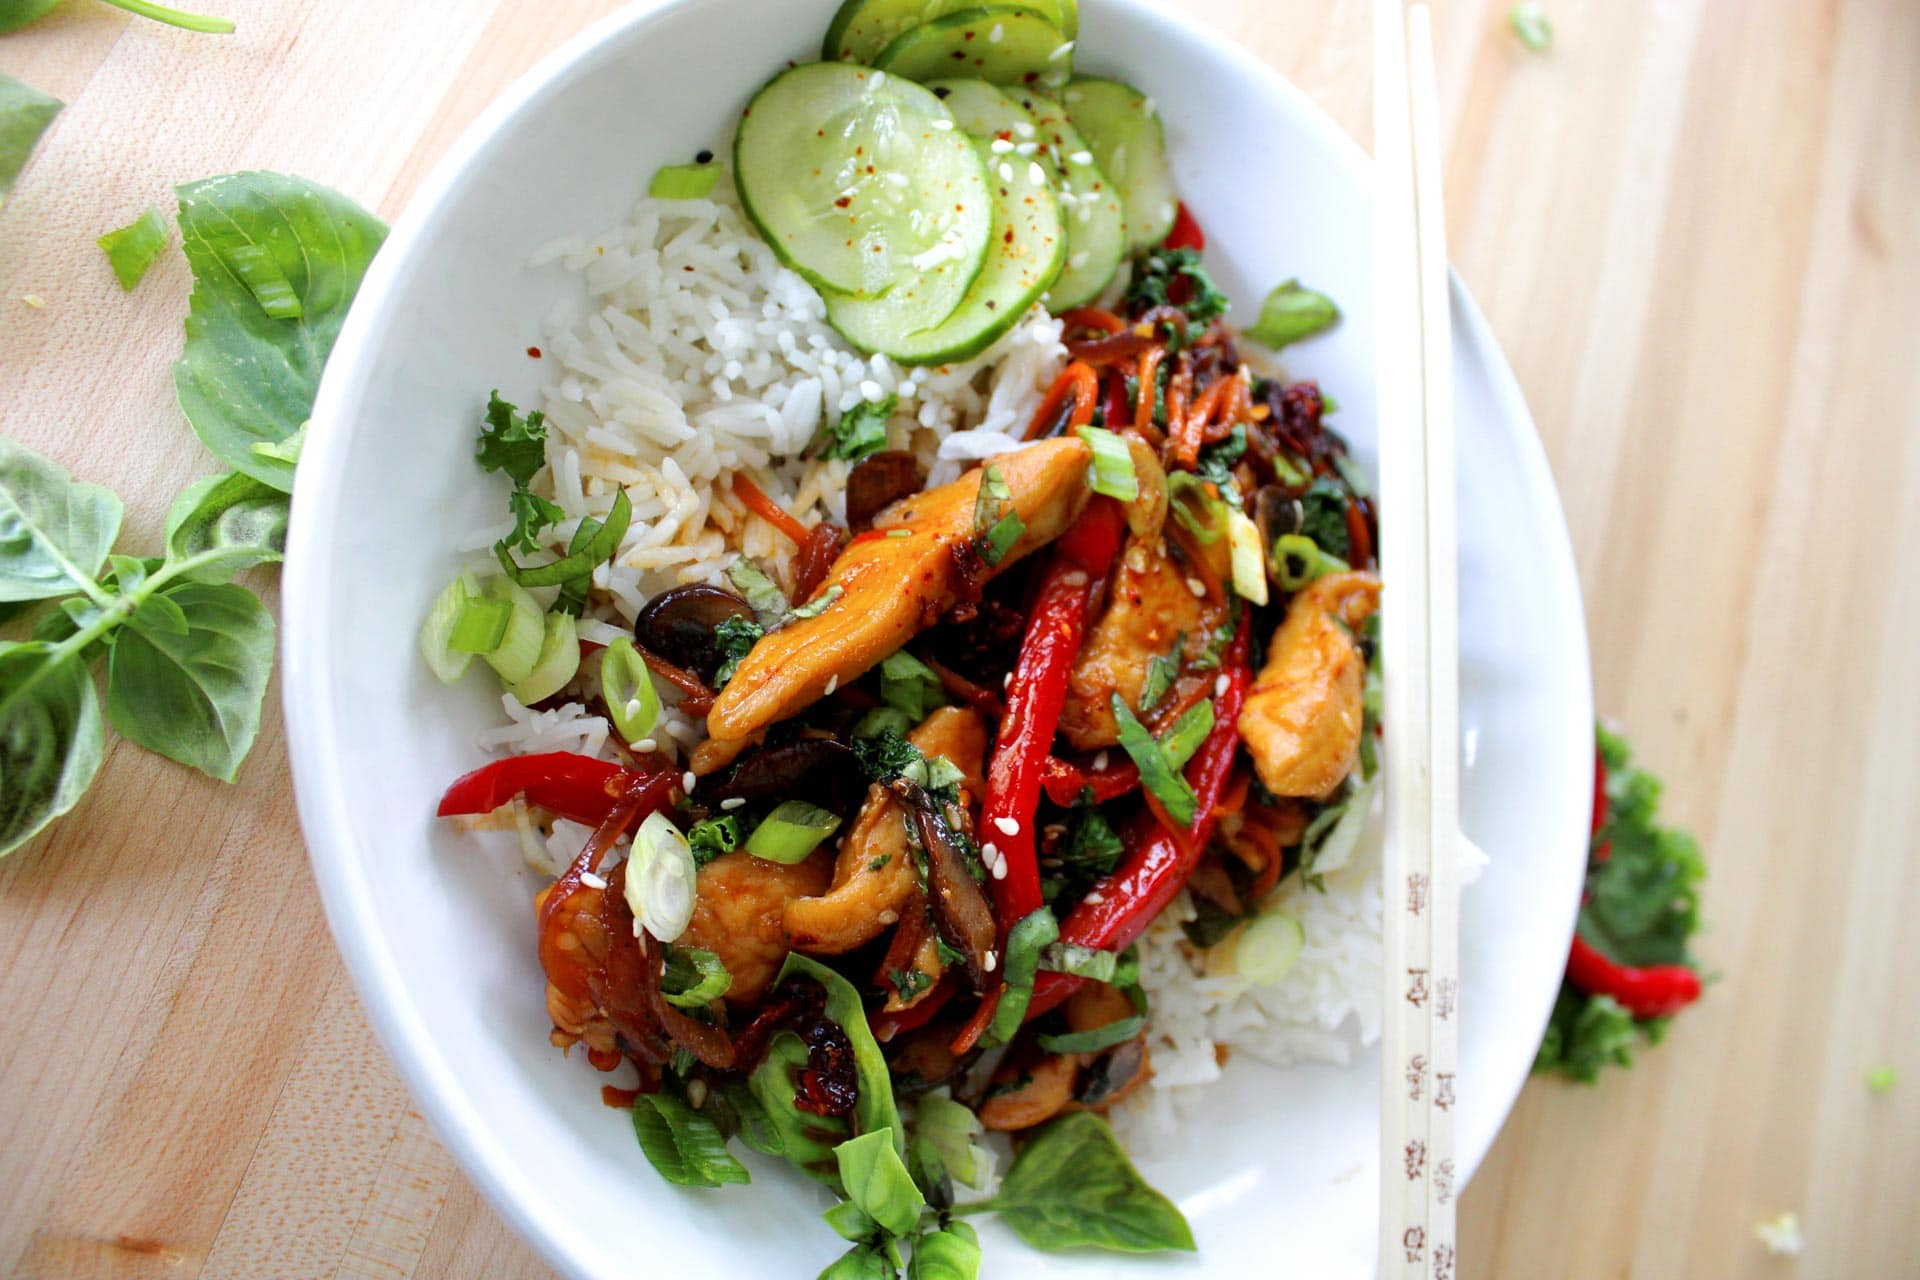 Sara Stirs: Whip up these tastier-than-takeout dishes in your home kitchen